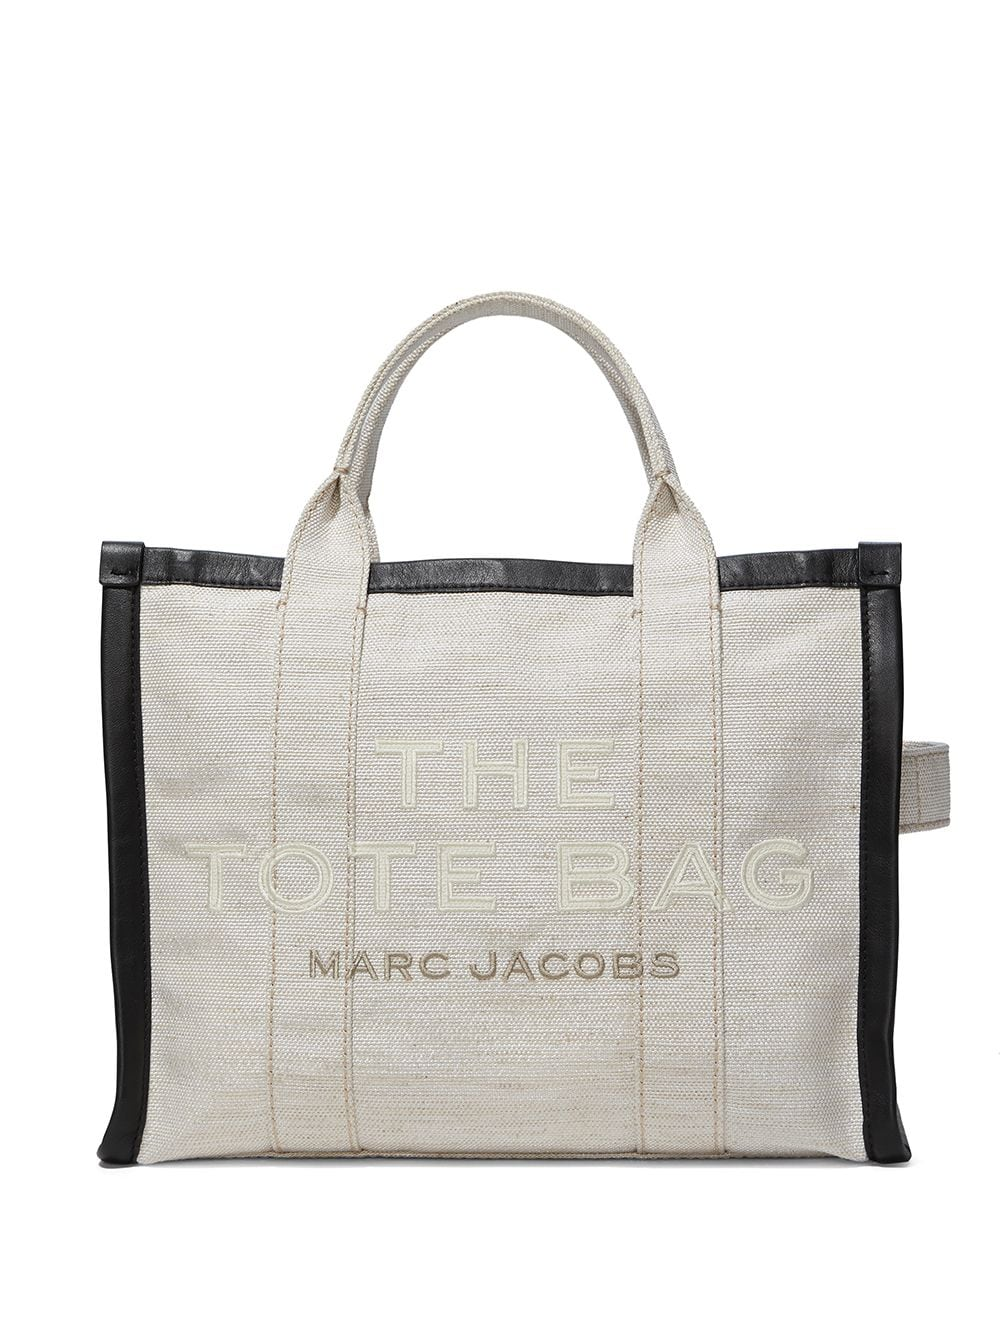 The Tote Small Bag